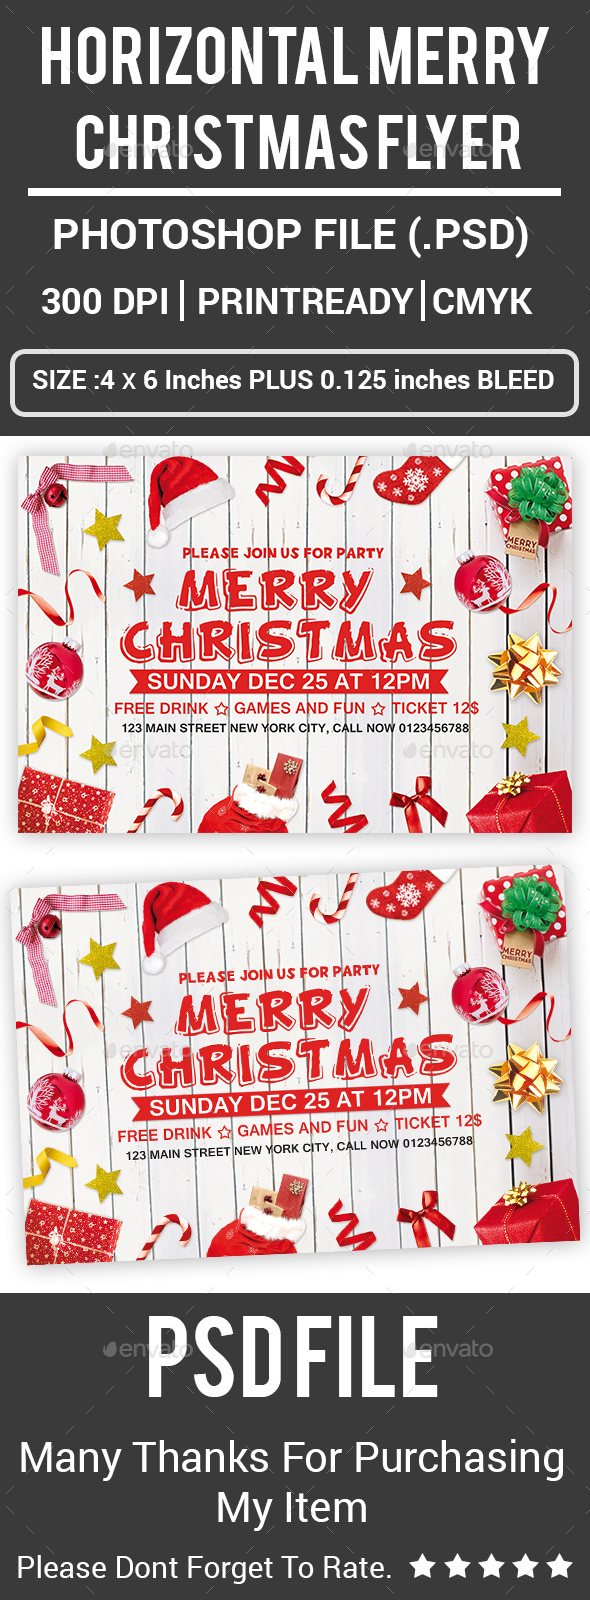 GraphicRiver Horizontal Merry Christmas Flyer 21121112